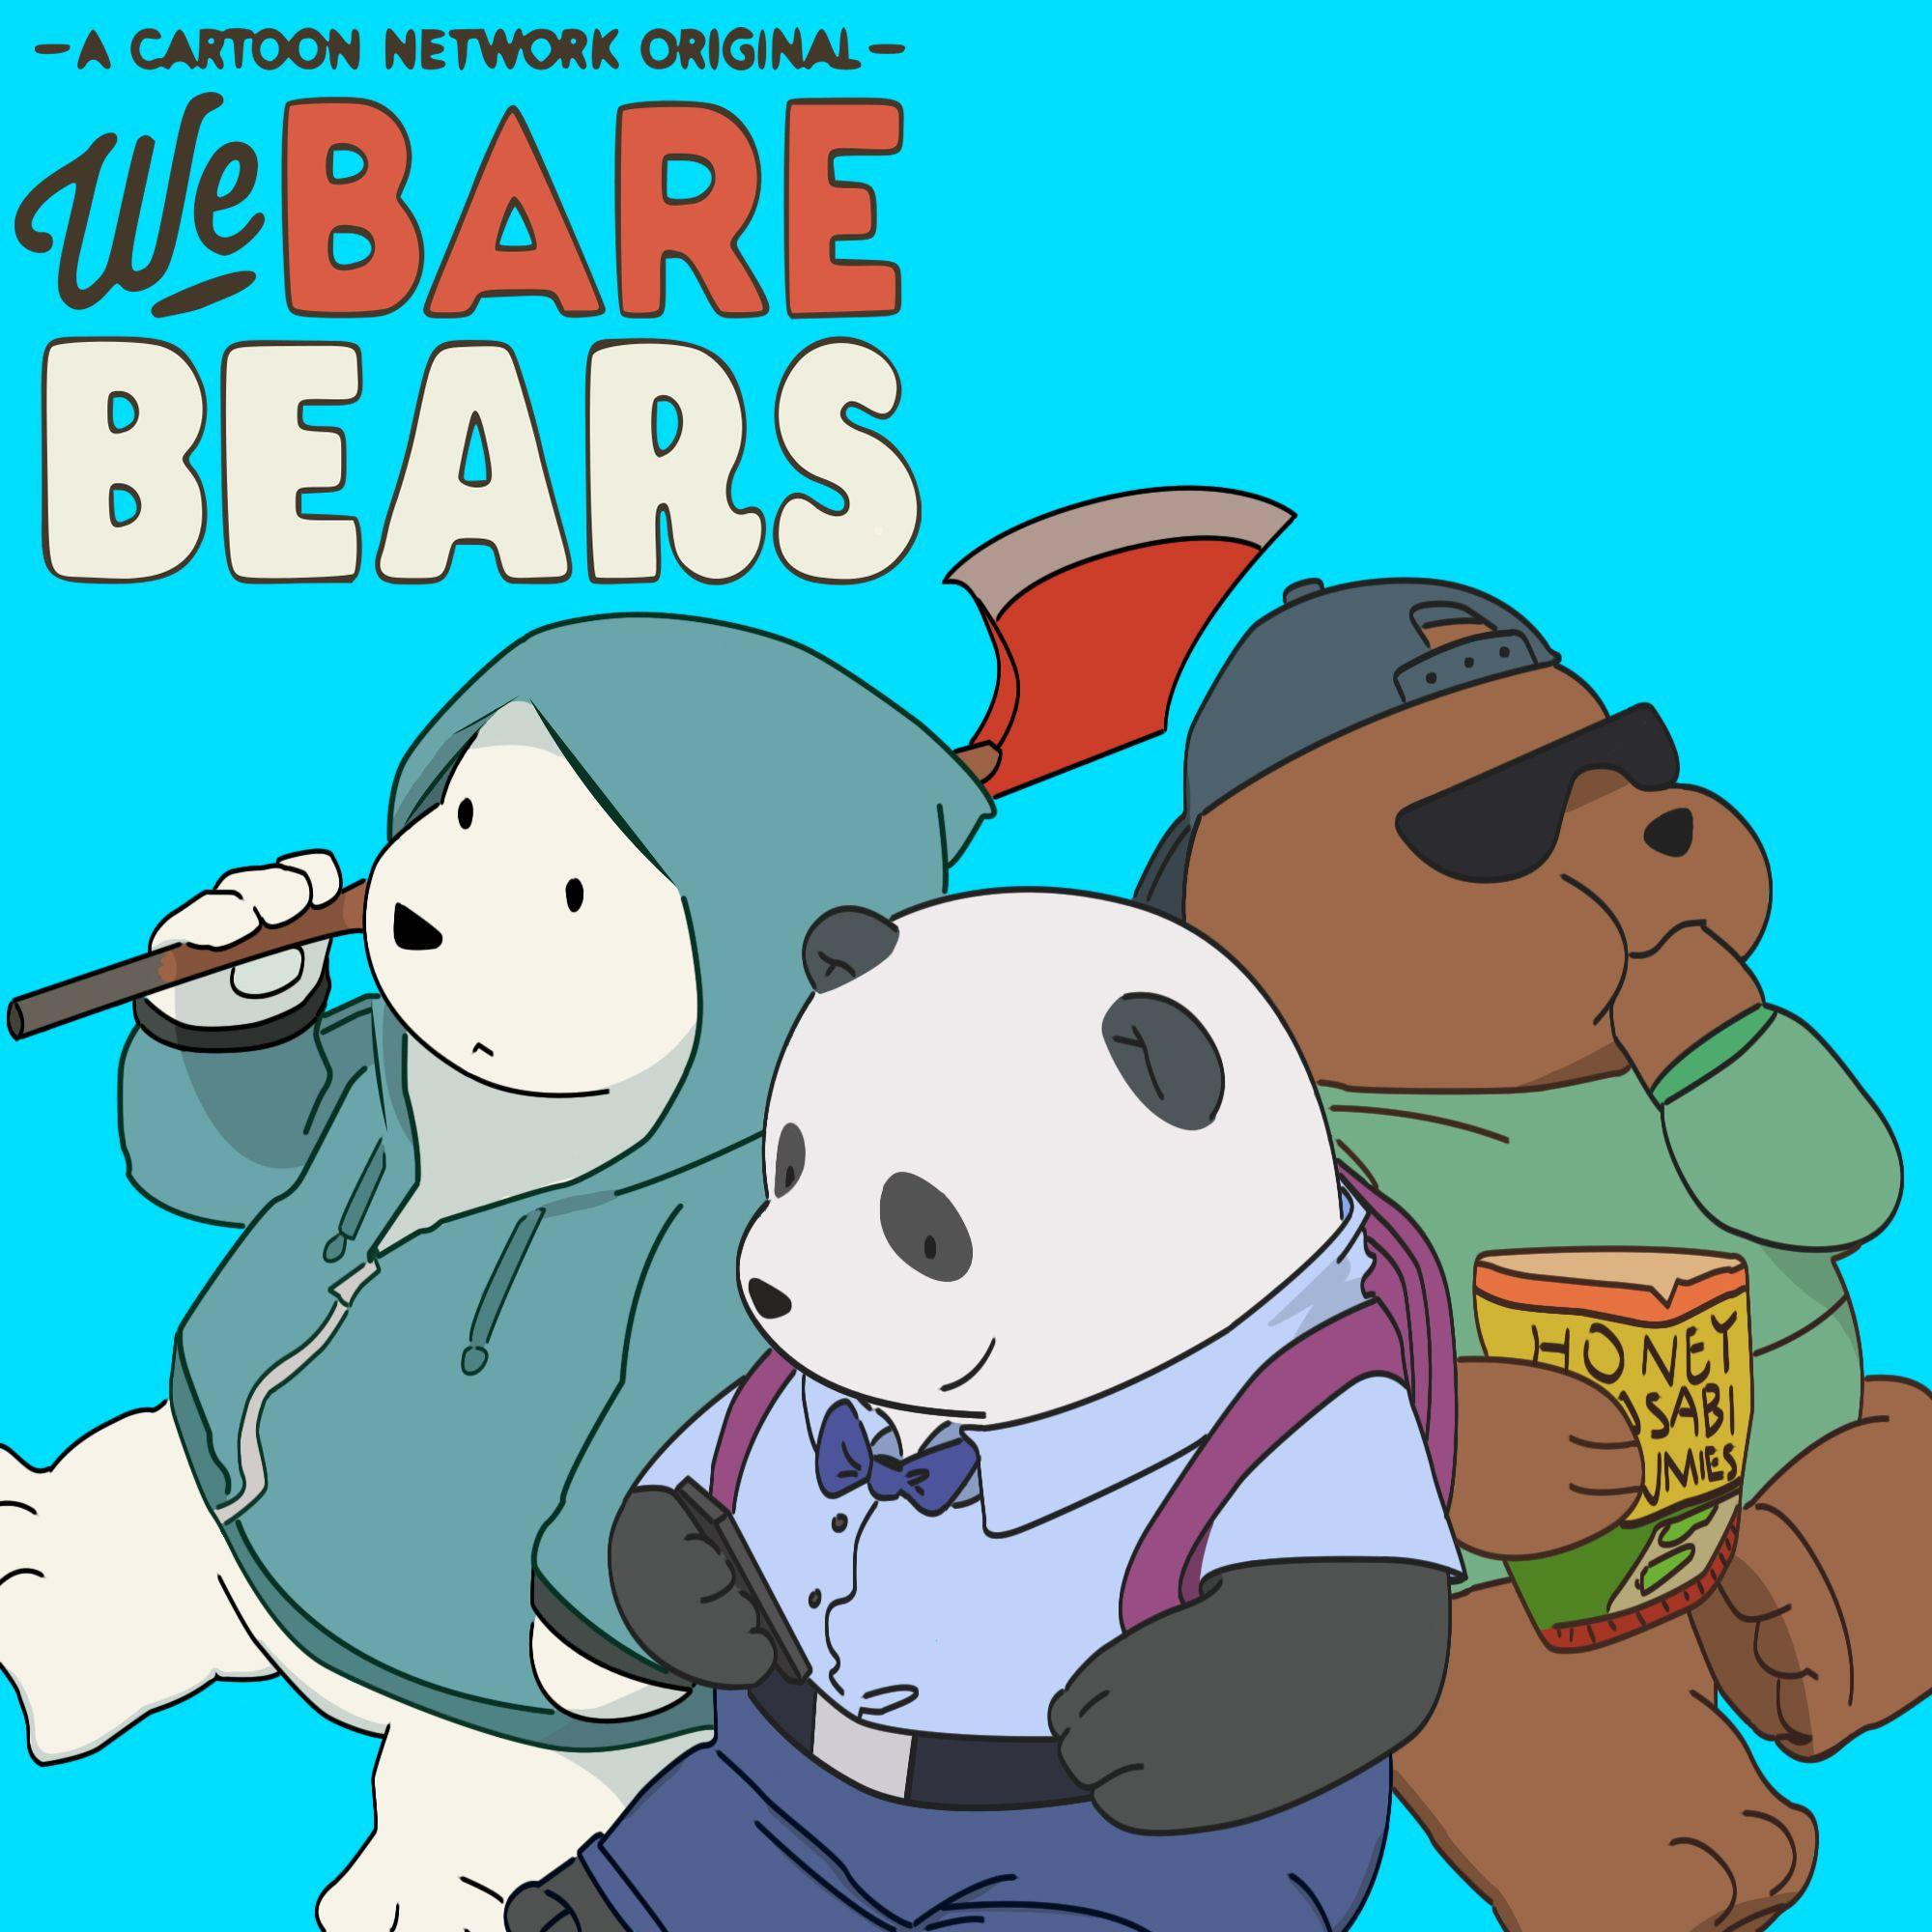 Vector] We Bare Bears by FALExD on DeviantArt